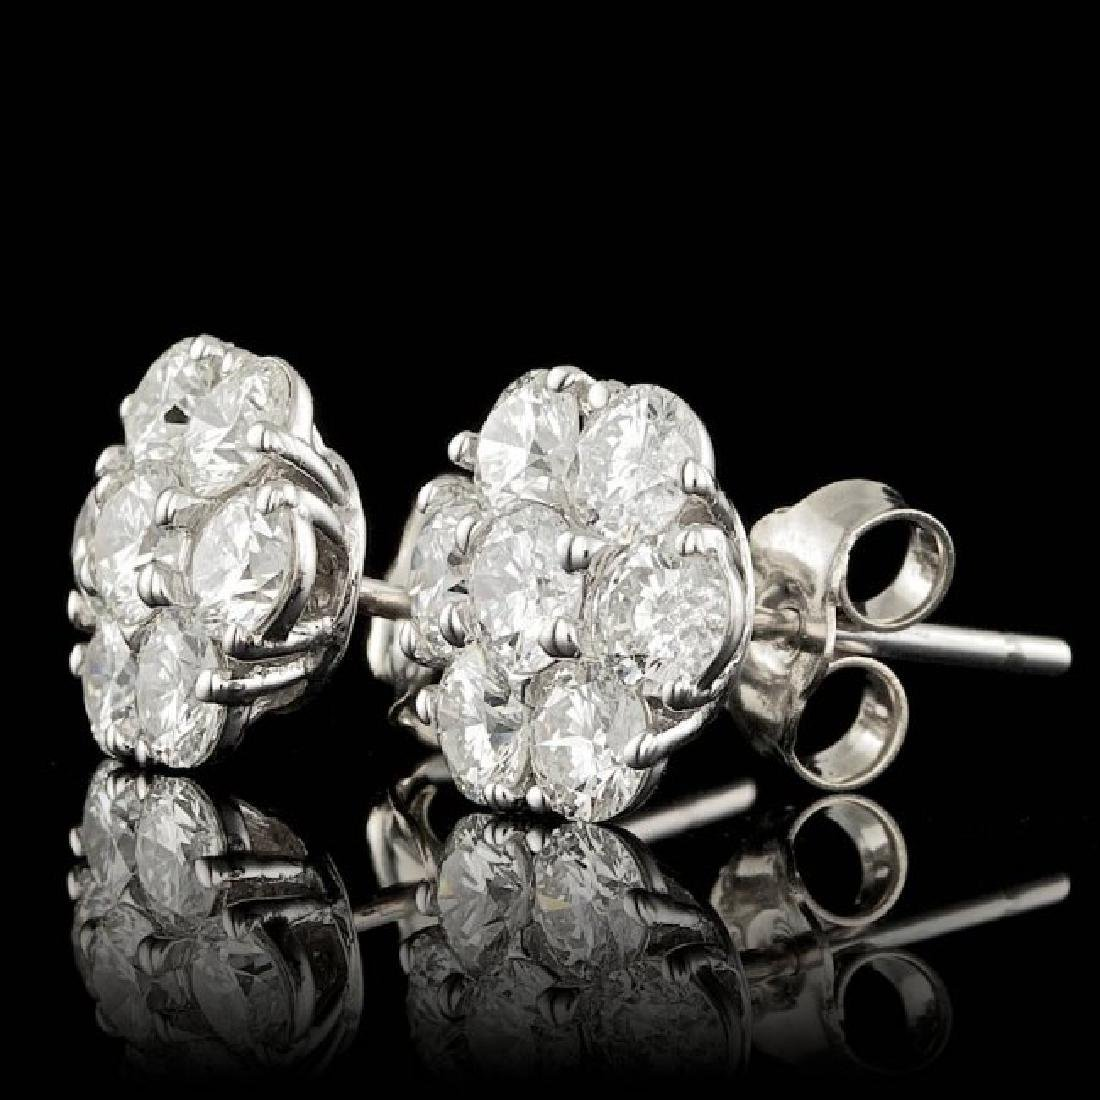 14k White Gold 2.25ct Diamond Earrings - 2